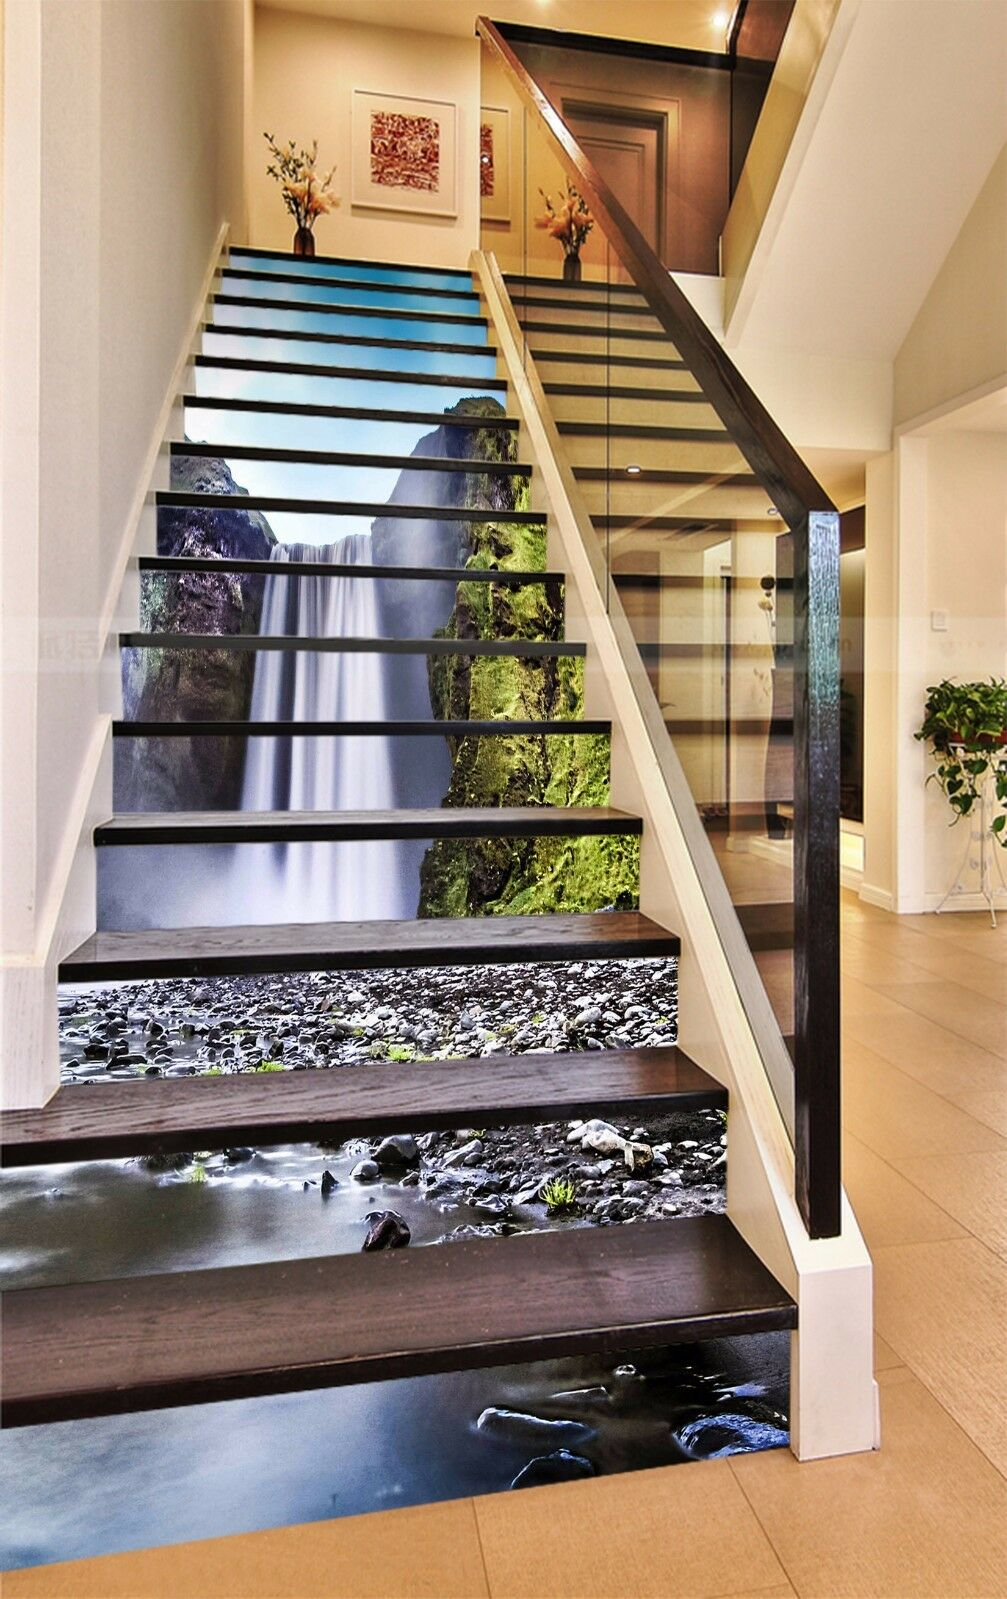 3D Valley Falls 739 Stair Risers Decoration Photo Mural Vinyl Decal Wallpaper AU